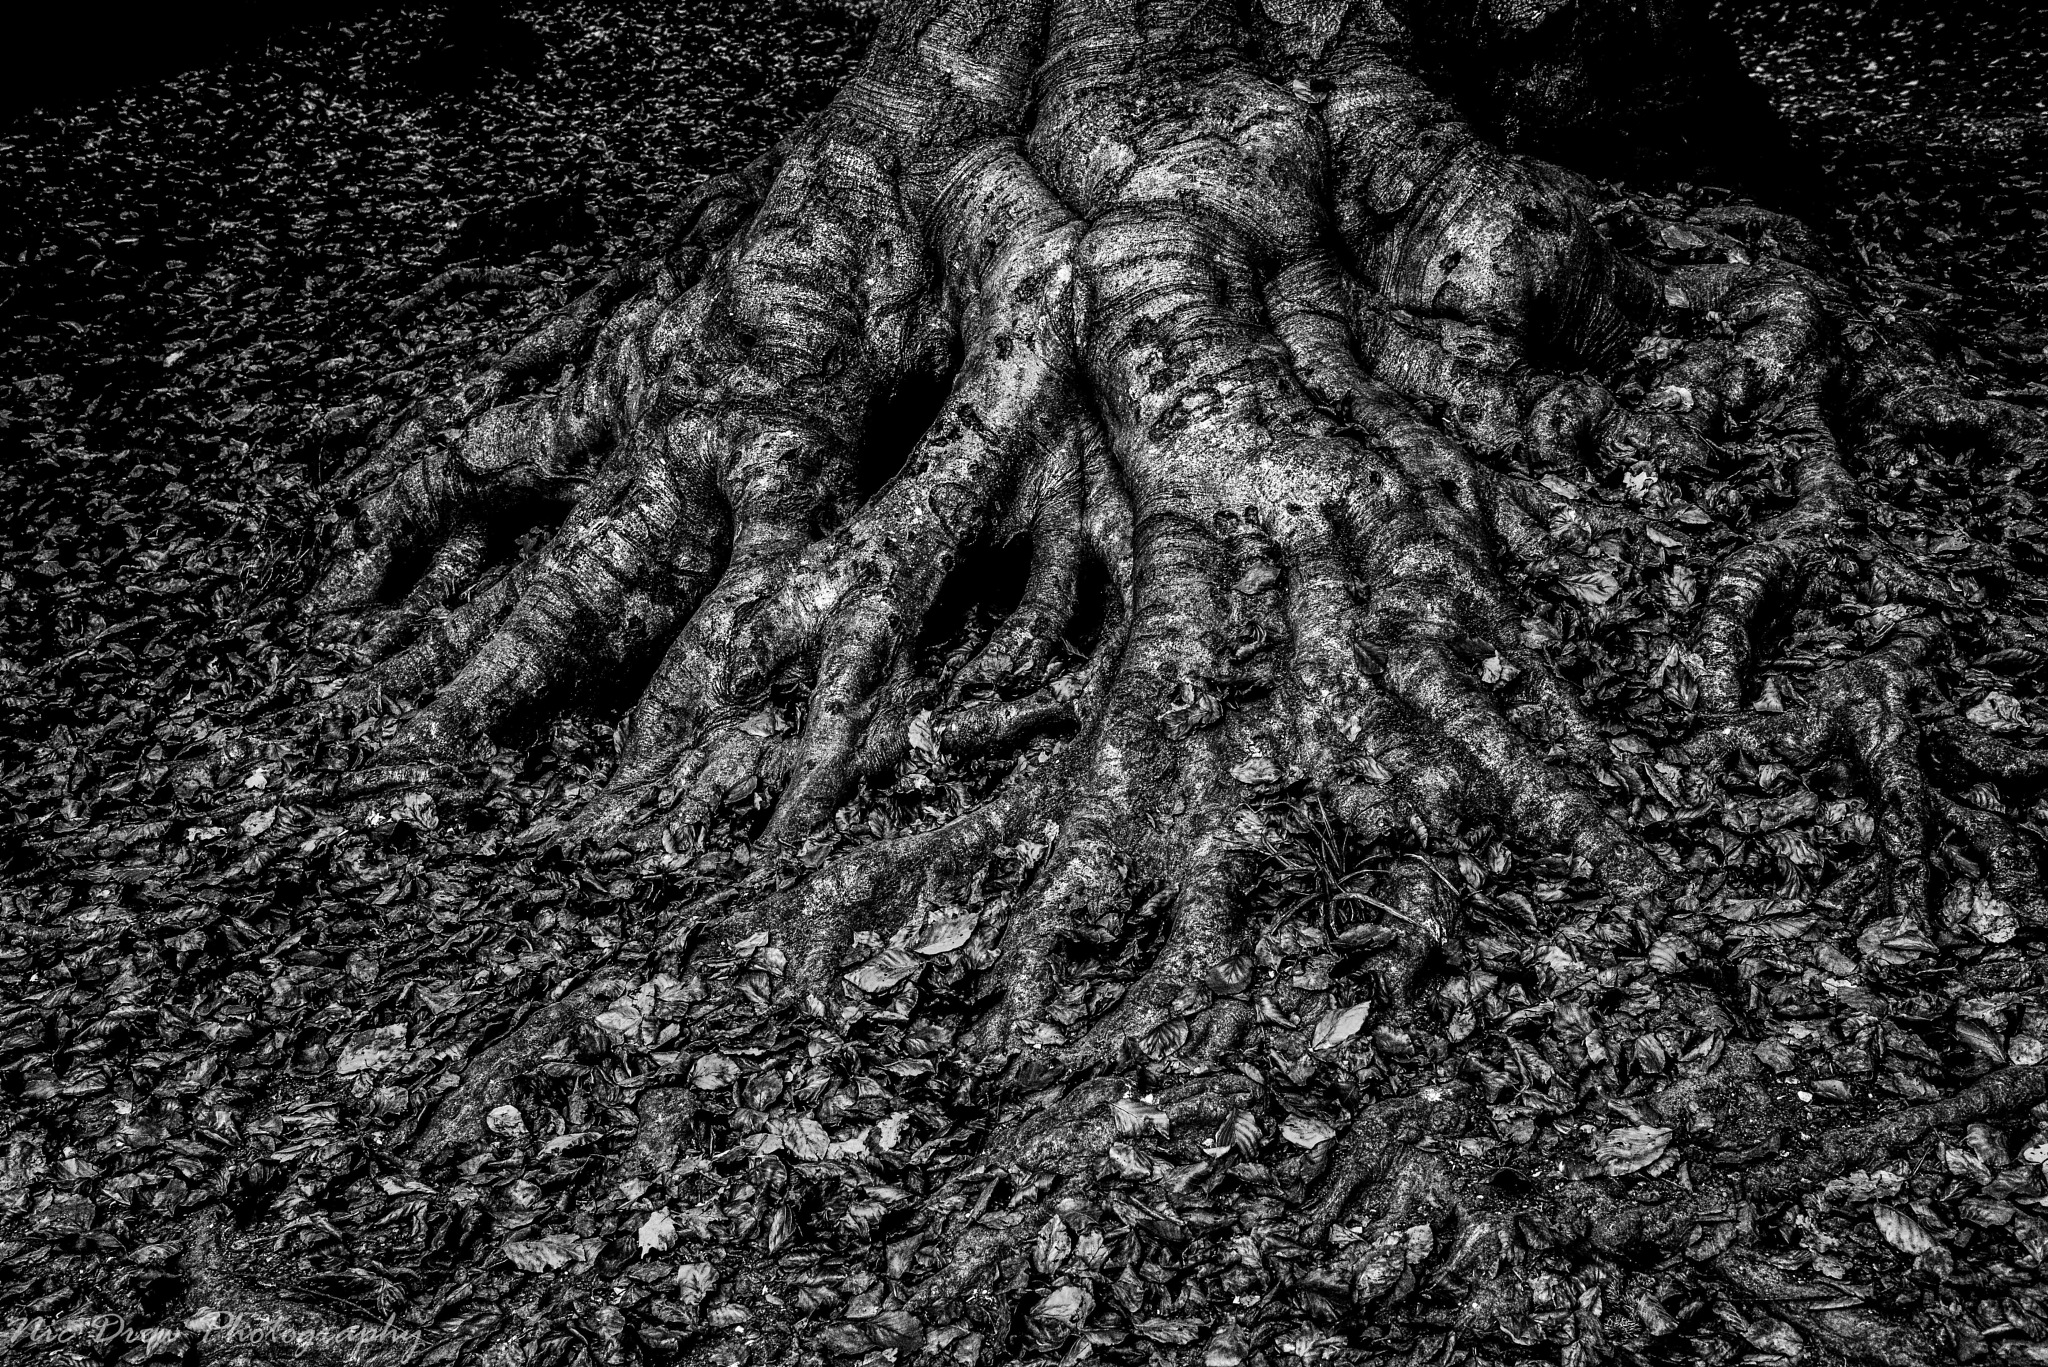 Tree roots by Nic Drew